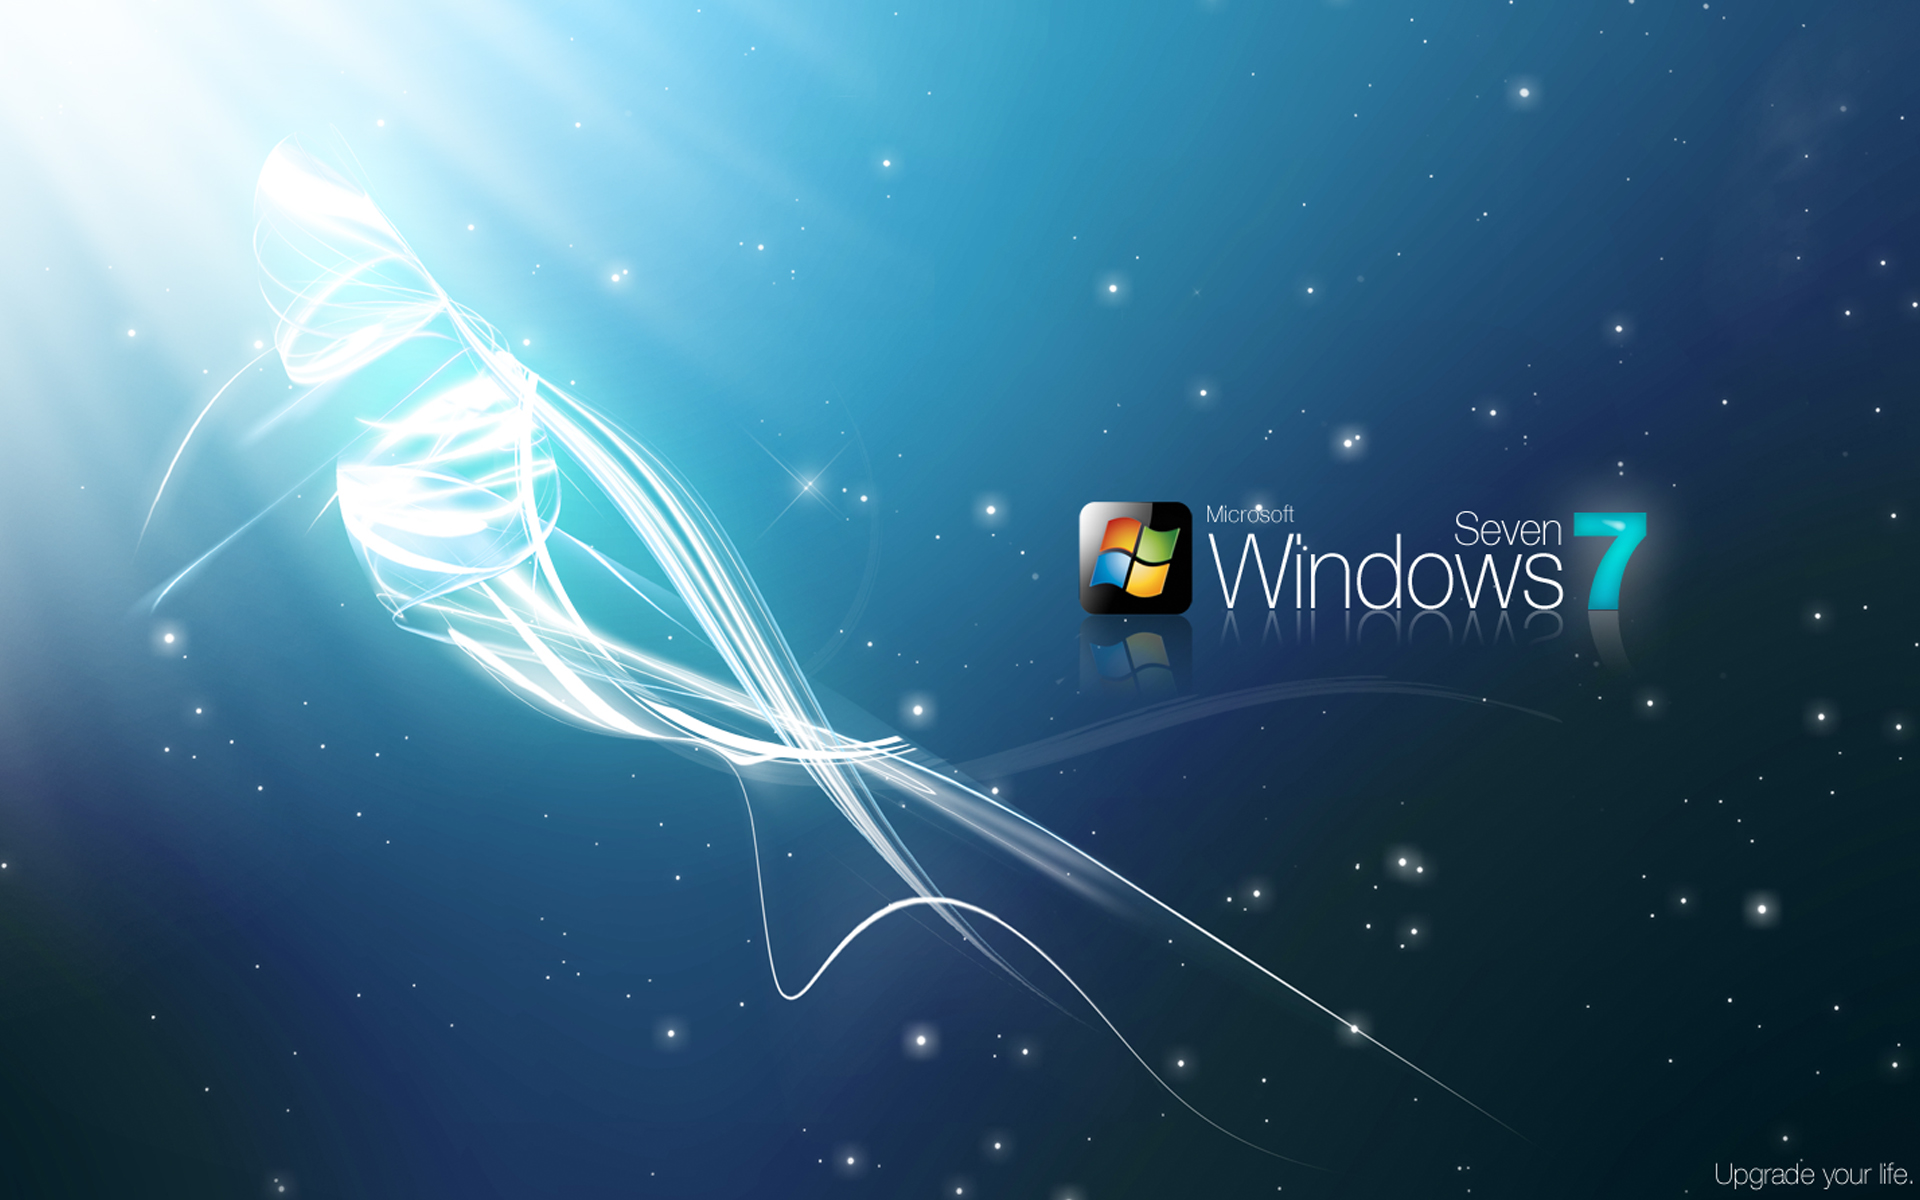 Free HQ Windows 7 Ultimate 1 . Wallpaper - Free HQ Wallpapers